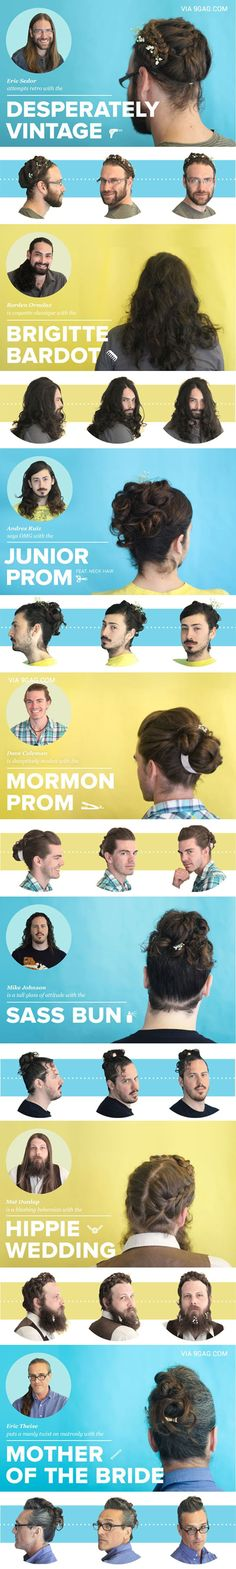 Guys With Fancy Lady Hair CAN'T STOP LAUGHING the 'Sass Bun' omg